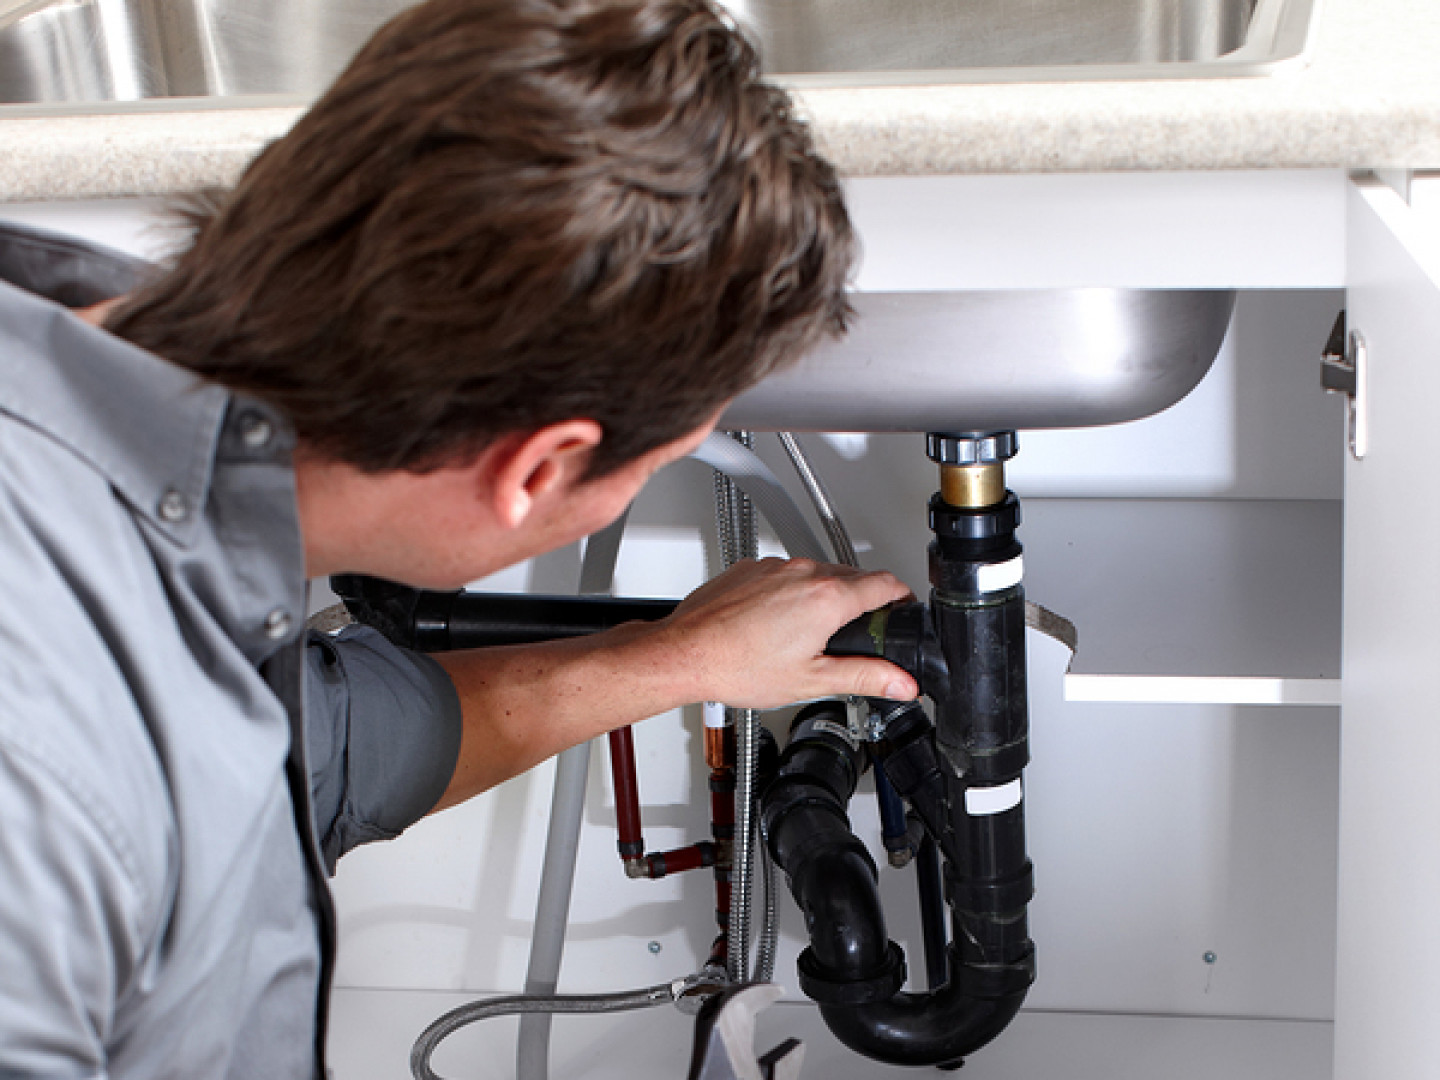 Sewer & Drain Cleaning in Shreveport, LA